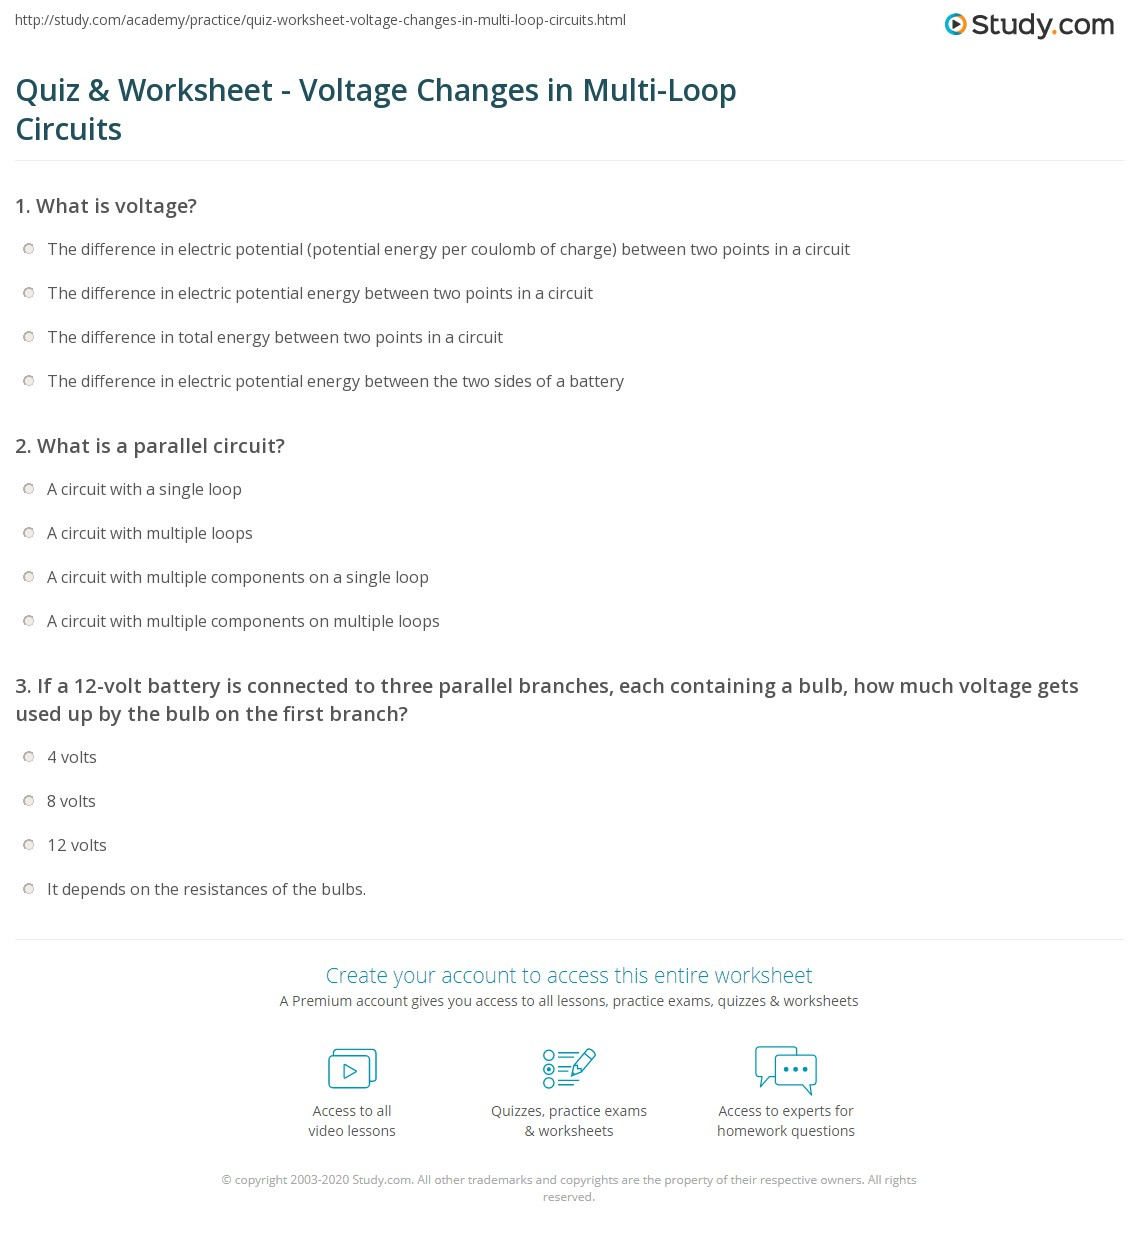 Quiz Worksheet Voltage Changes In Multi Loop Circuits Parallel Circuit Bulbs Are What Is A